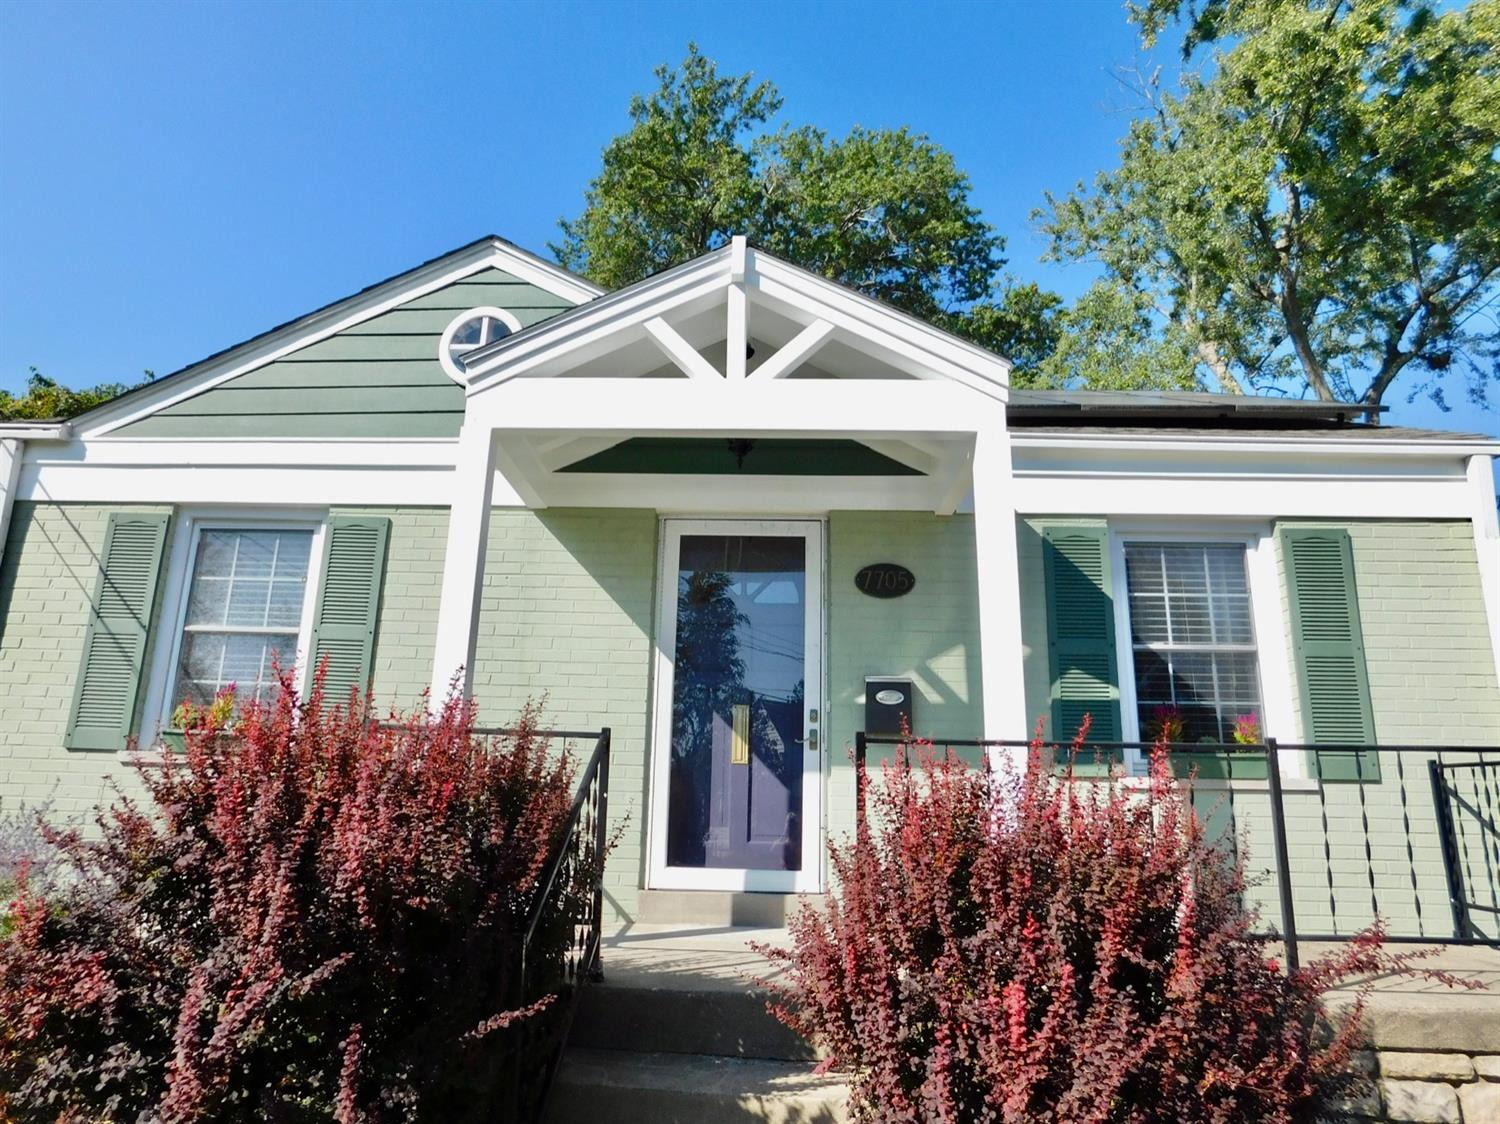 7705 Moss Court, Deer Park, Ohio 45236, 2 Bedrooms Bedrooms, 7 Rooms Rooms,1 BathroomBathrooms,Single Family Residence,For Sale,Moss,1716120